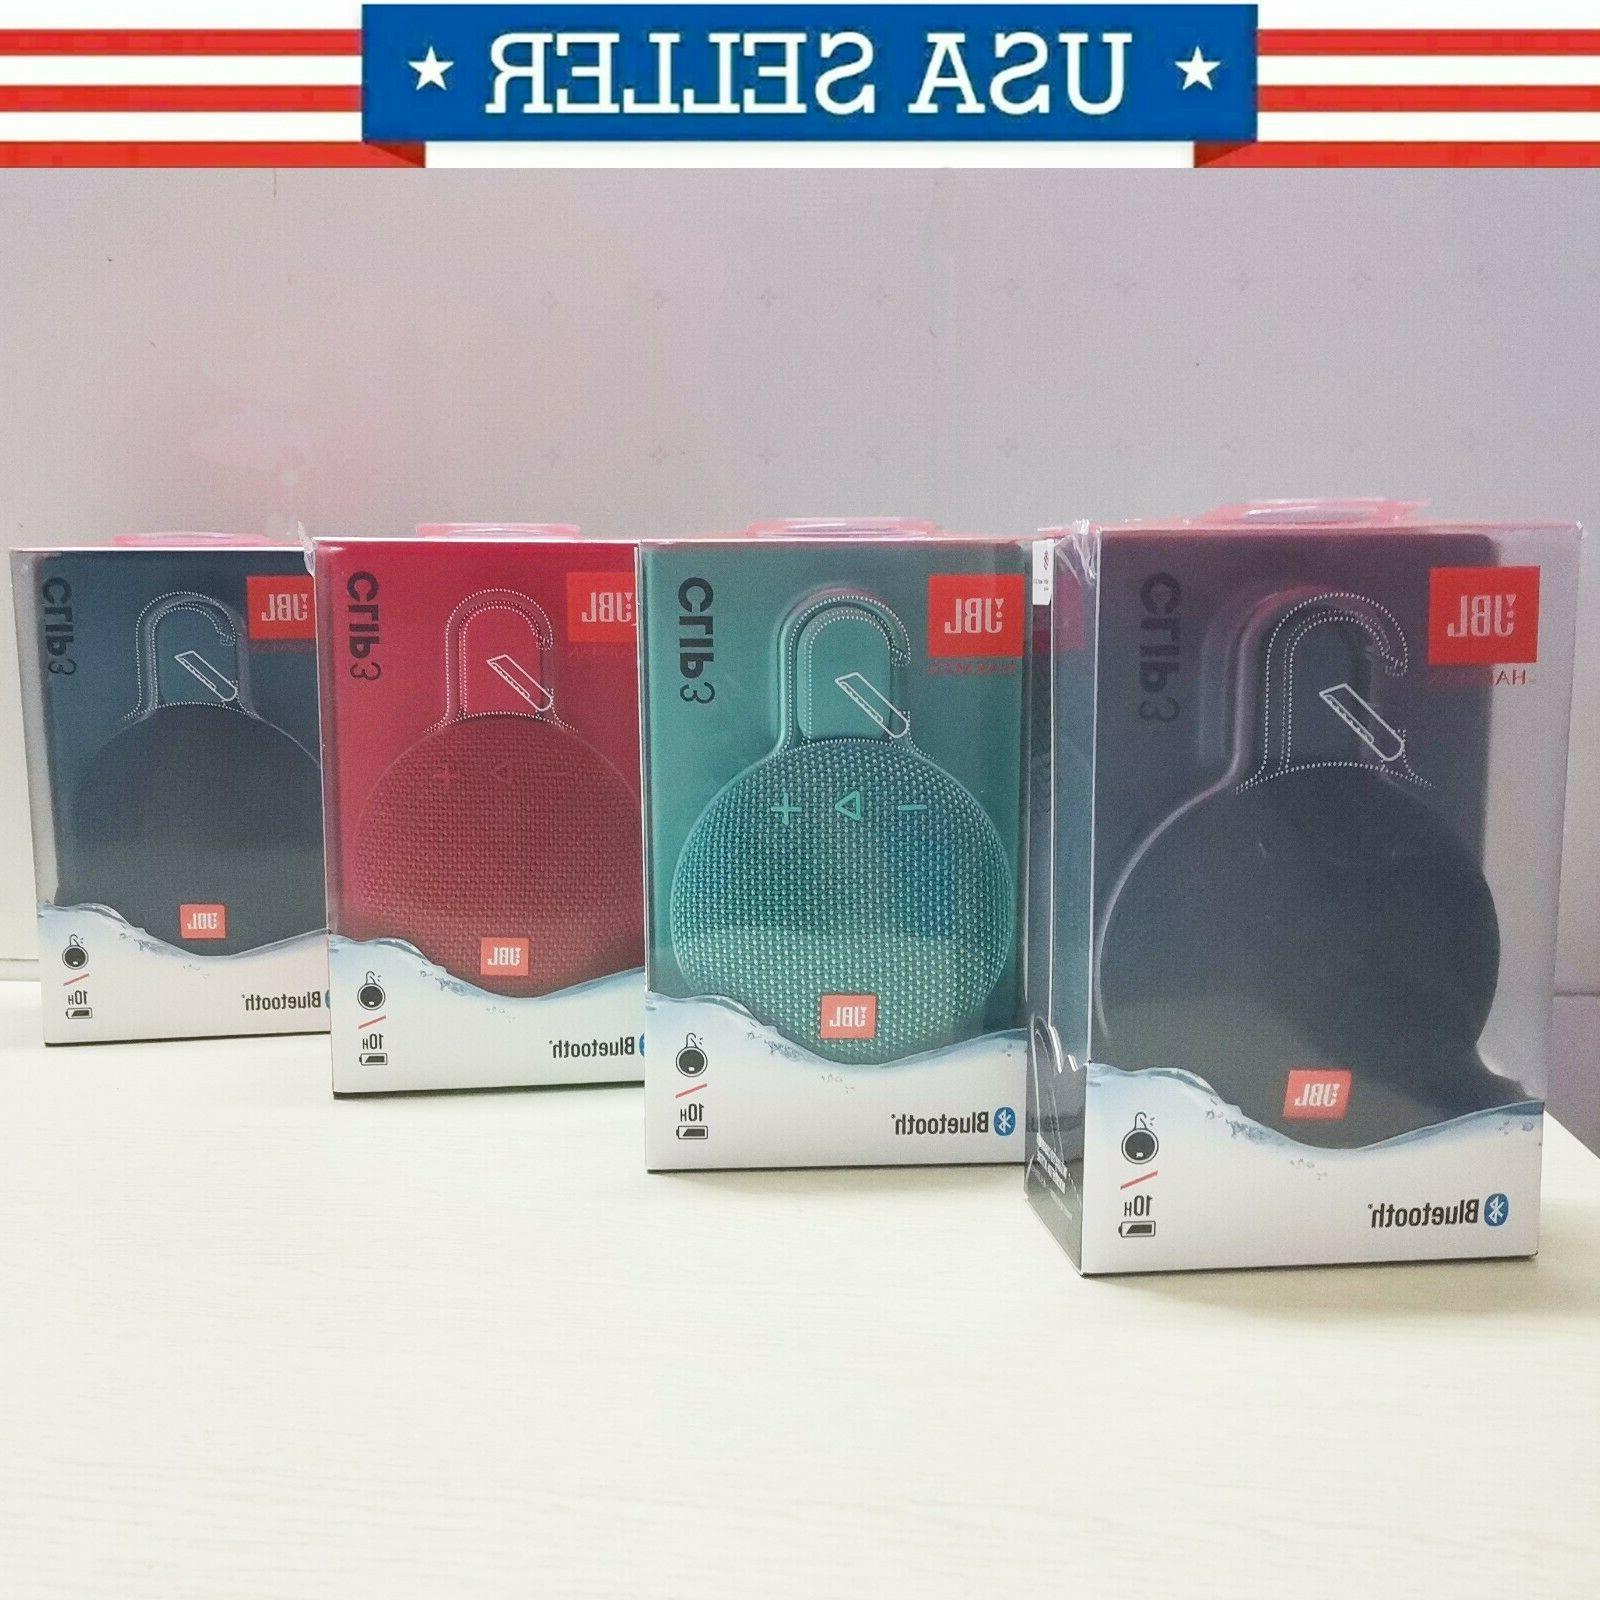 clip 3 rechargeable waterproof portable bluetooth speaker